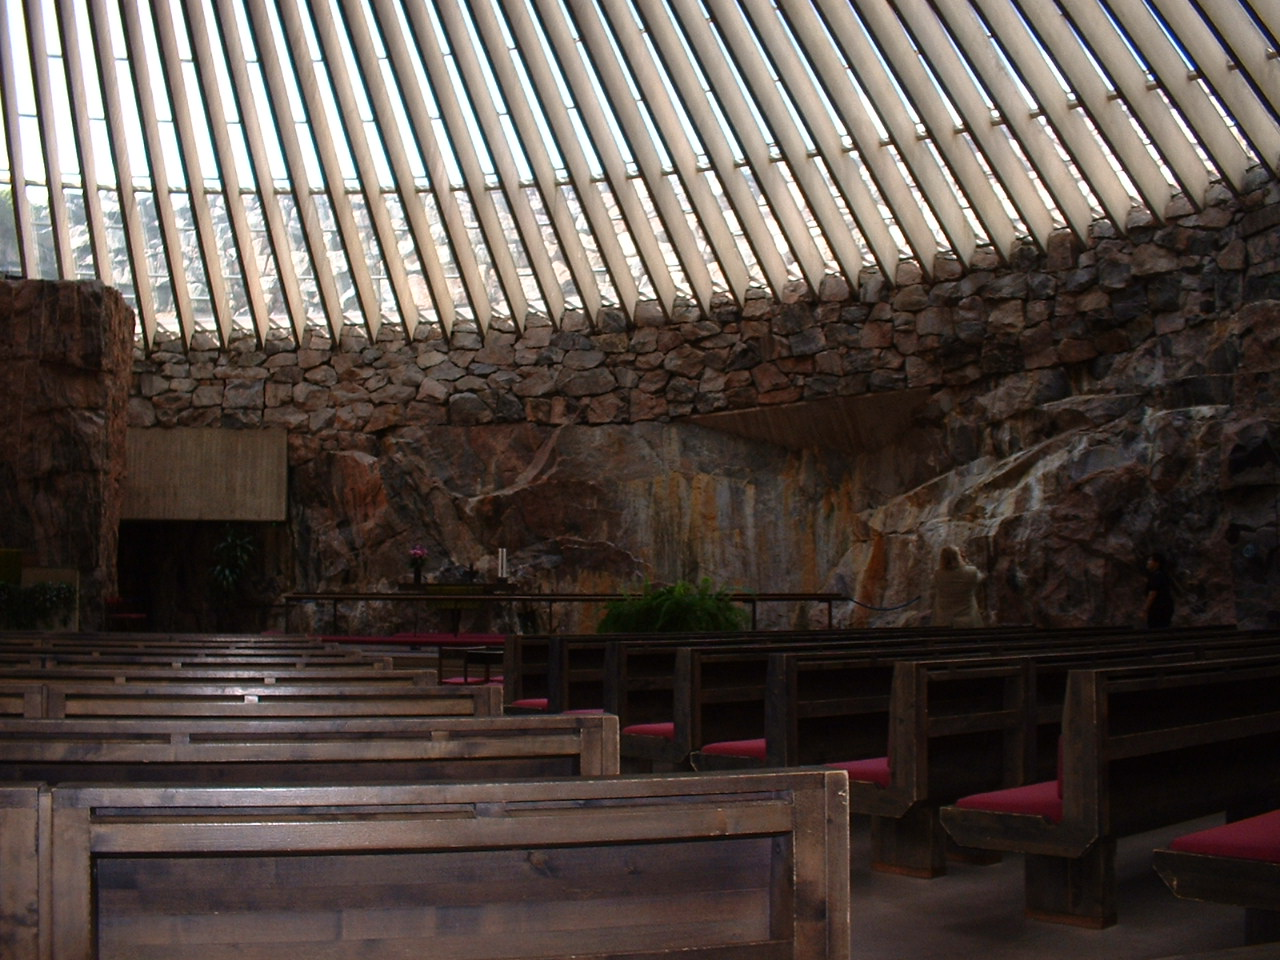 Undeground church - Helsinki